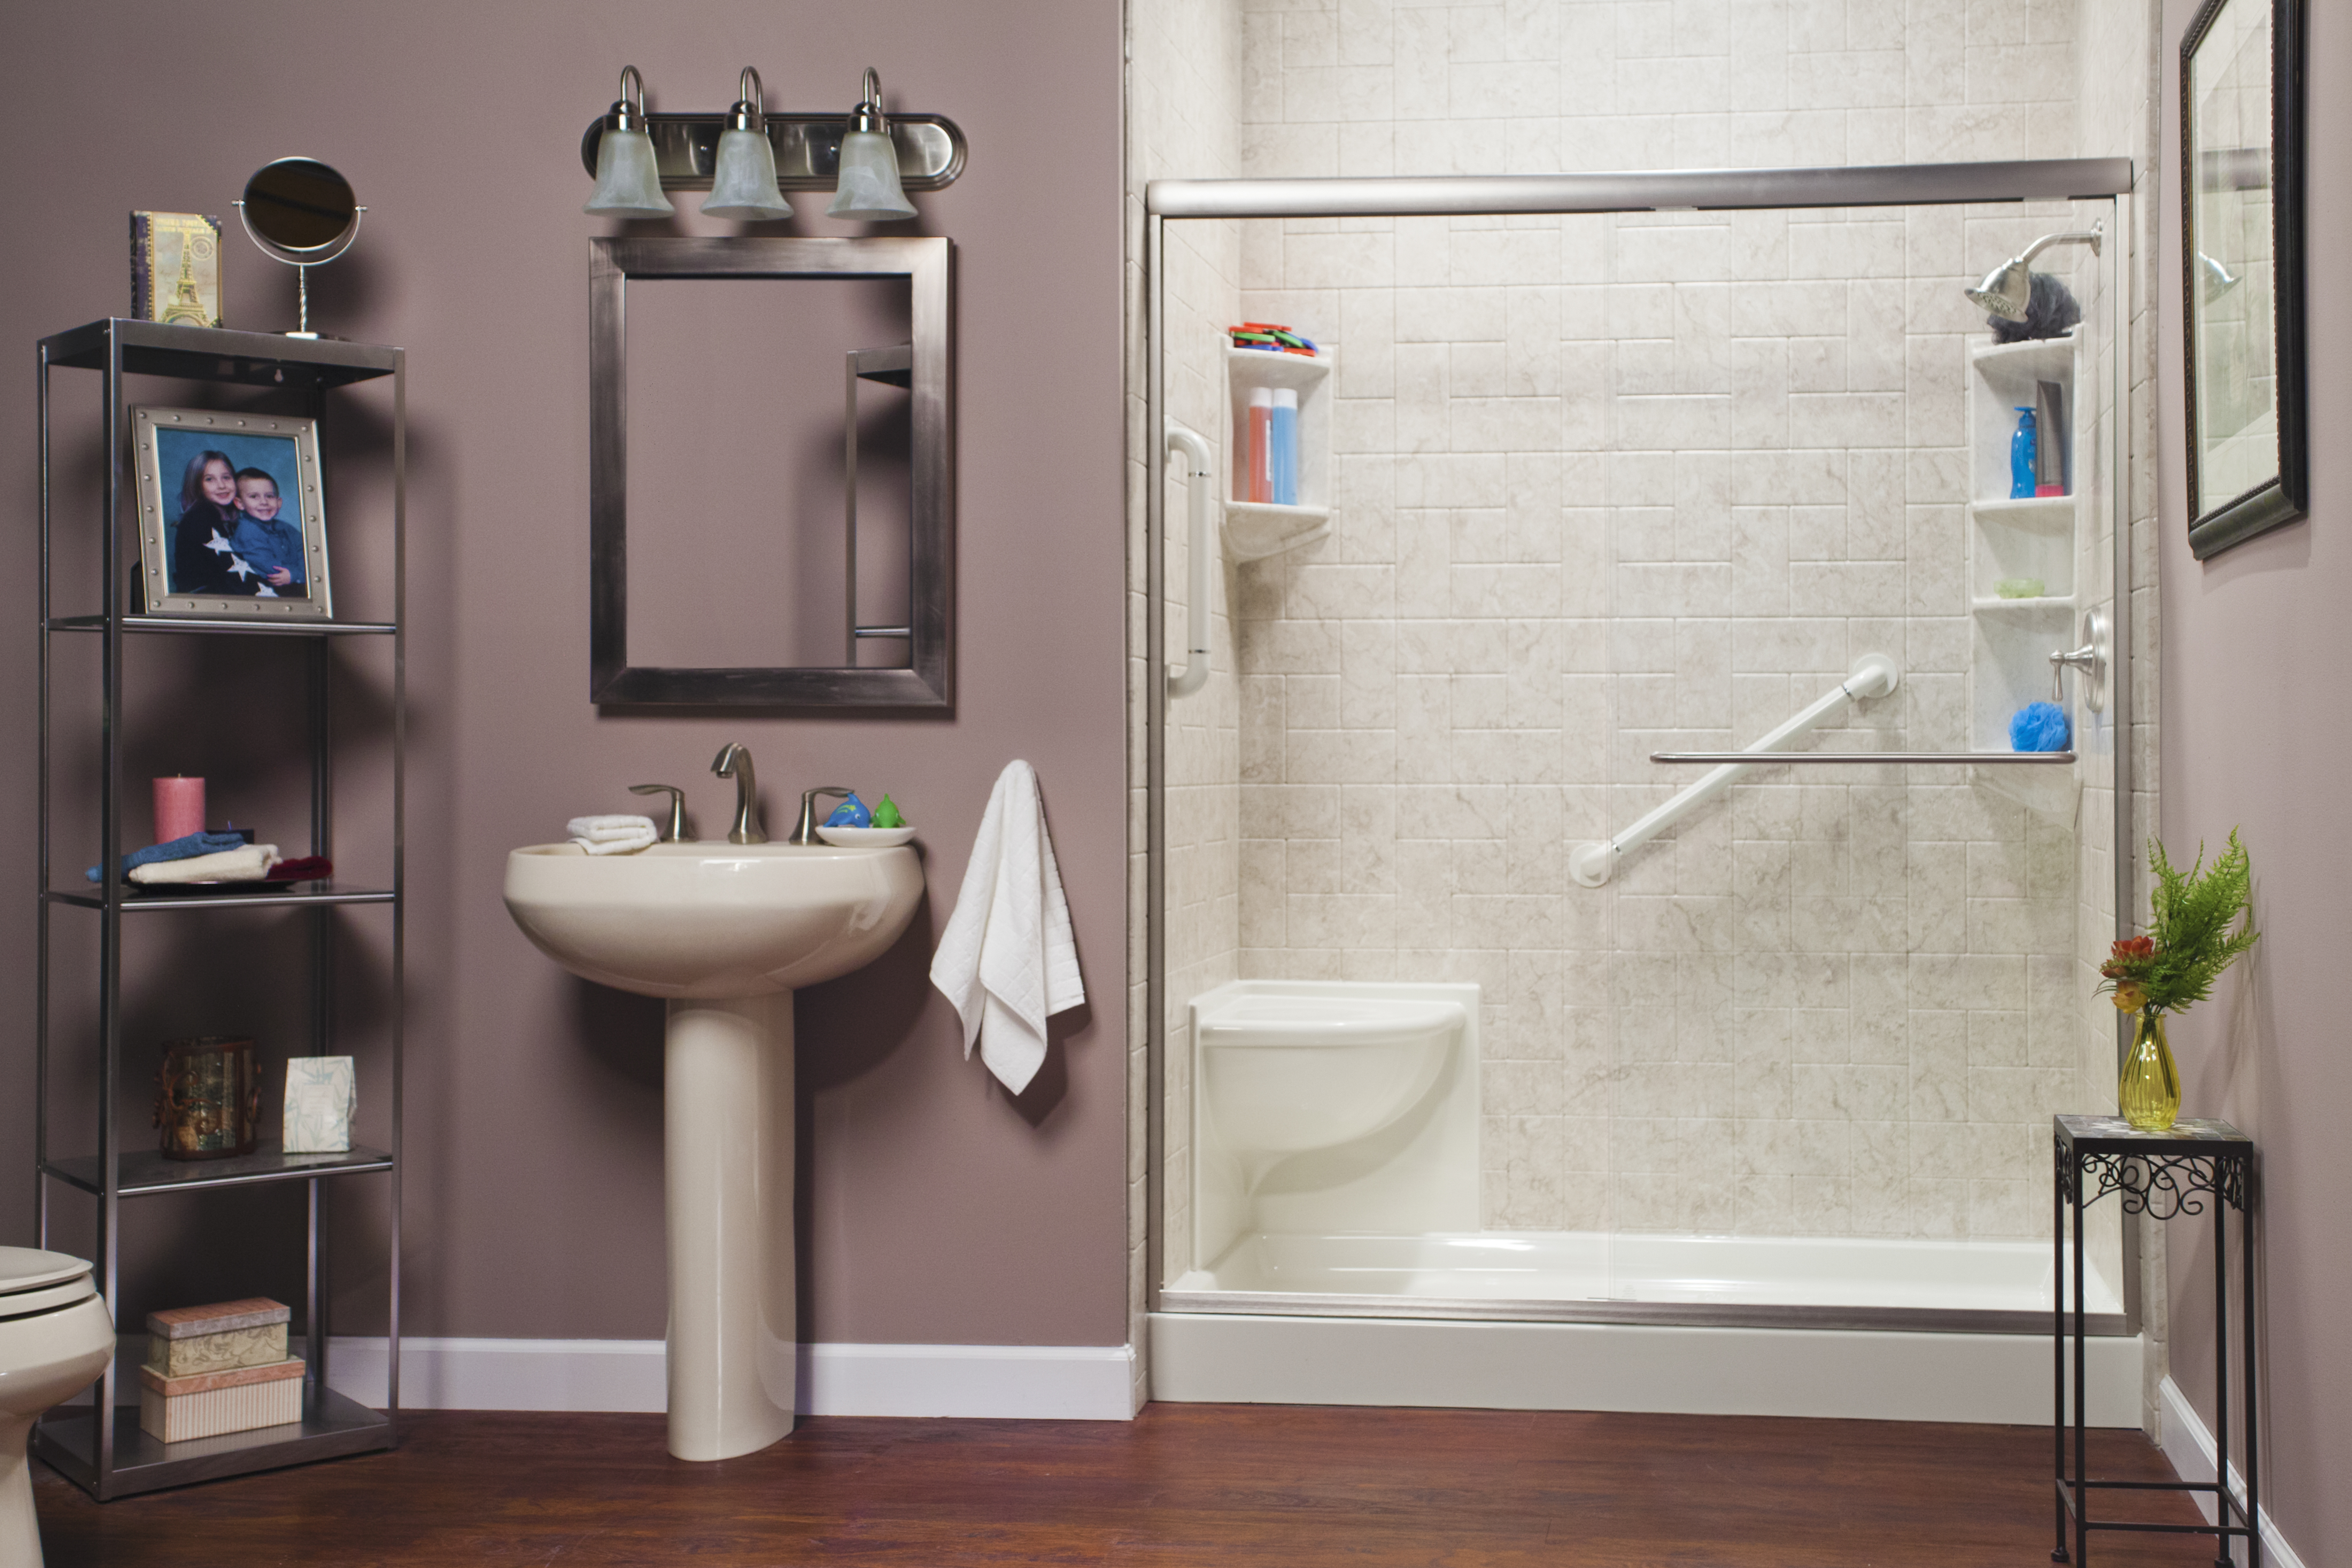 Biscuit_Corner_Seat_&_Shower_with_Brecchia_Windmill_Walls_&_Brushed_Nickel_Photo1_IMG_0757_HR_bci.jp